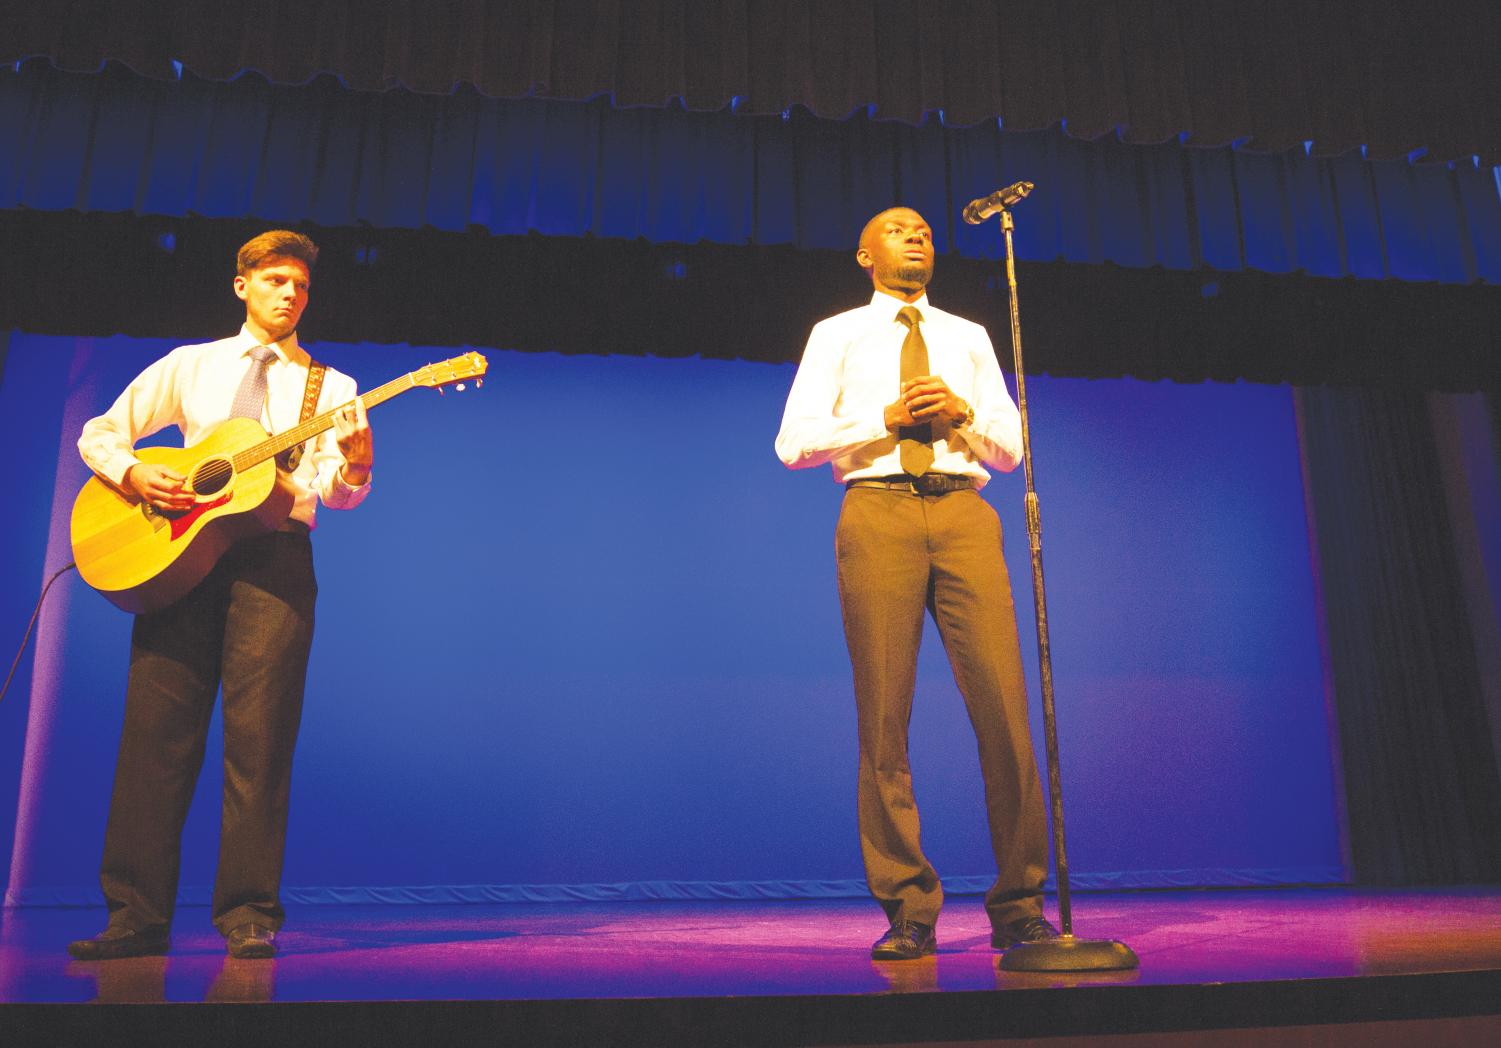 Rischard Brown and Christian Holloman perform a spoken word presentation for the 20th Annual Celebration of Dr. Martin L. King Jr.